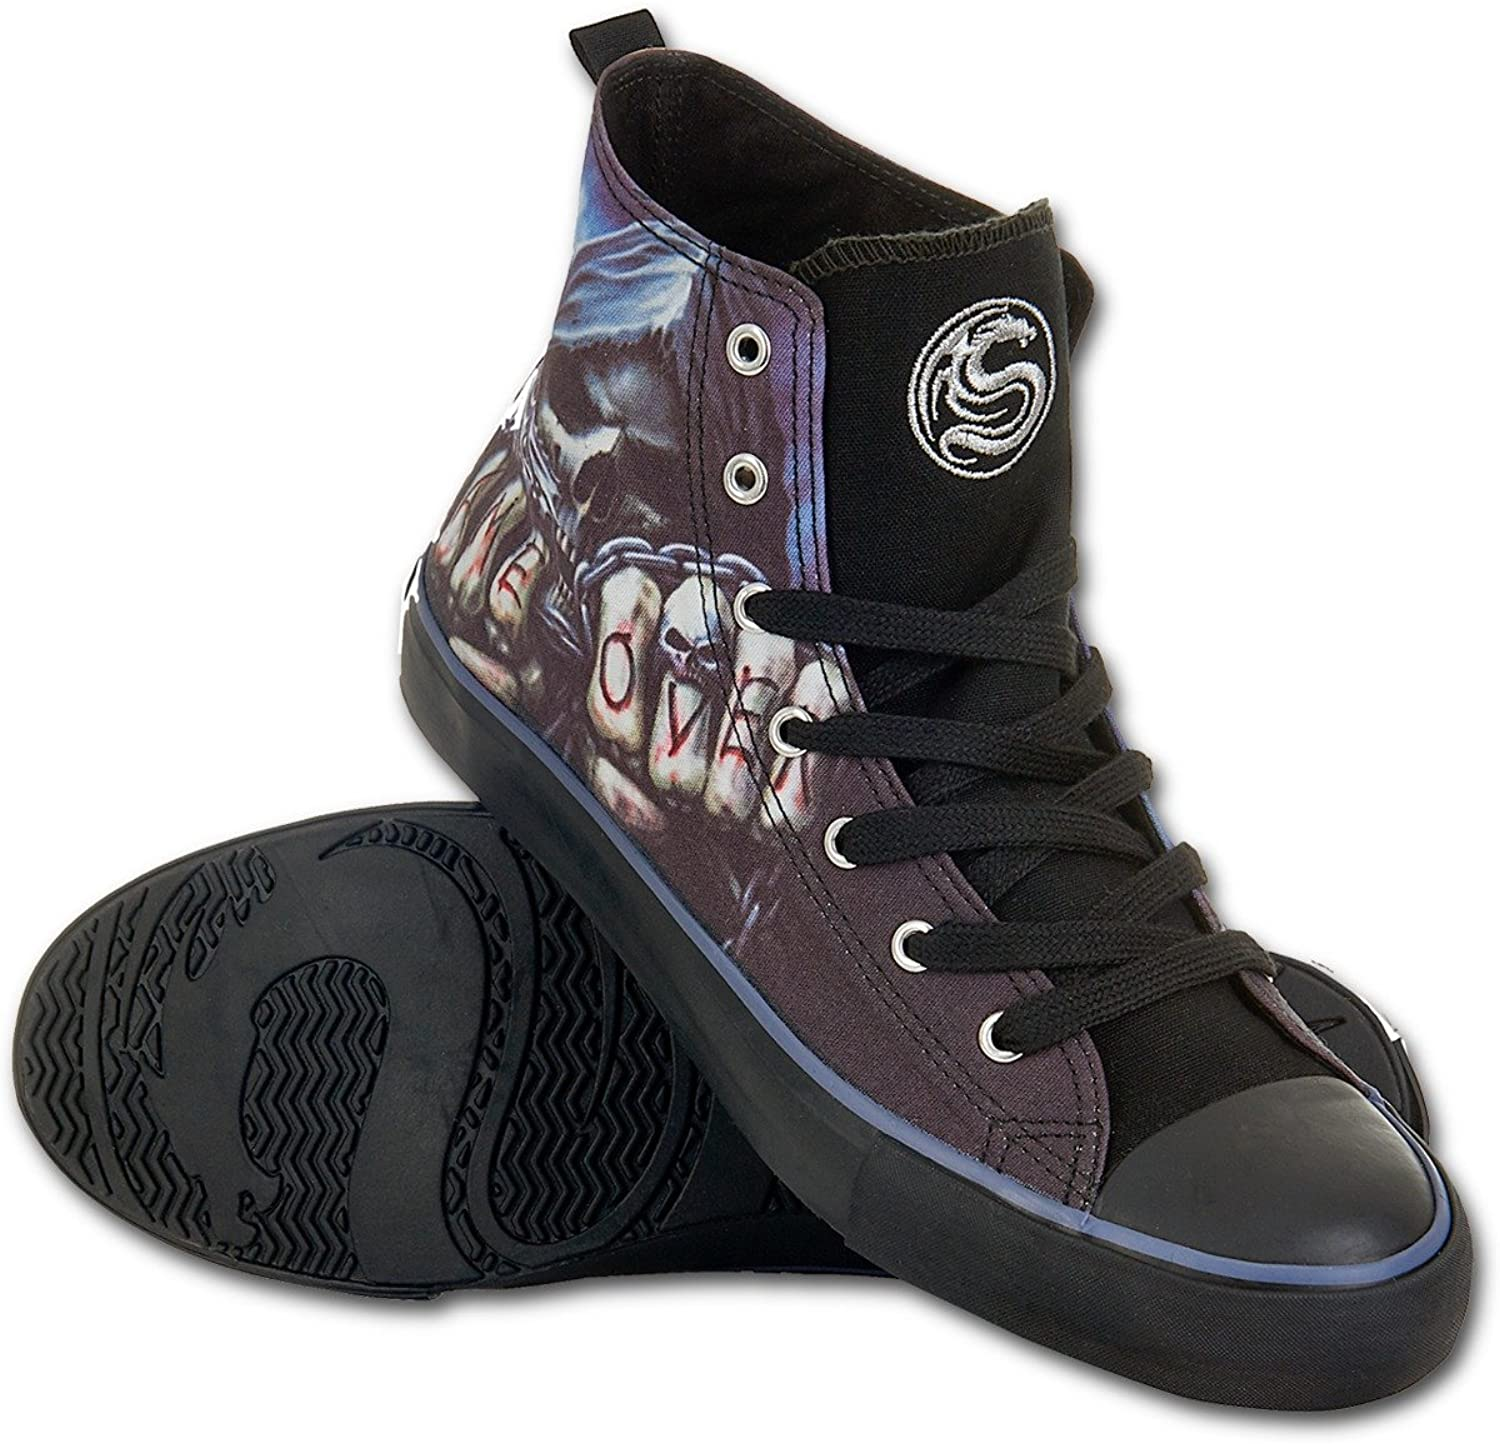 Spiral Mens - Game Over - Sneakers - Men's High Top Laceup